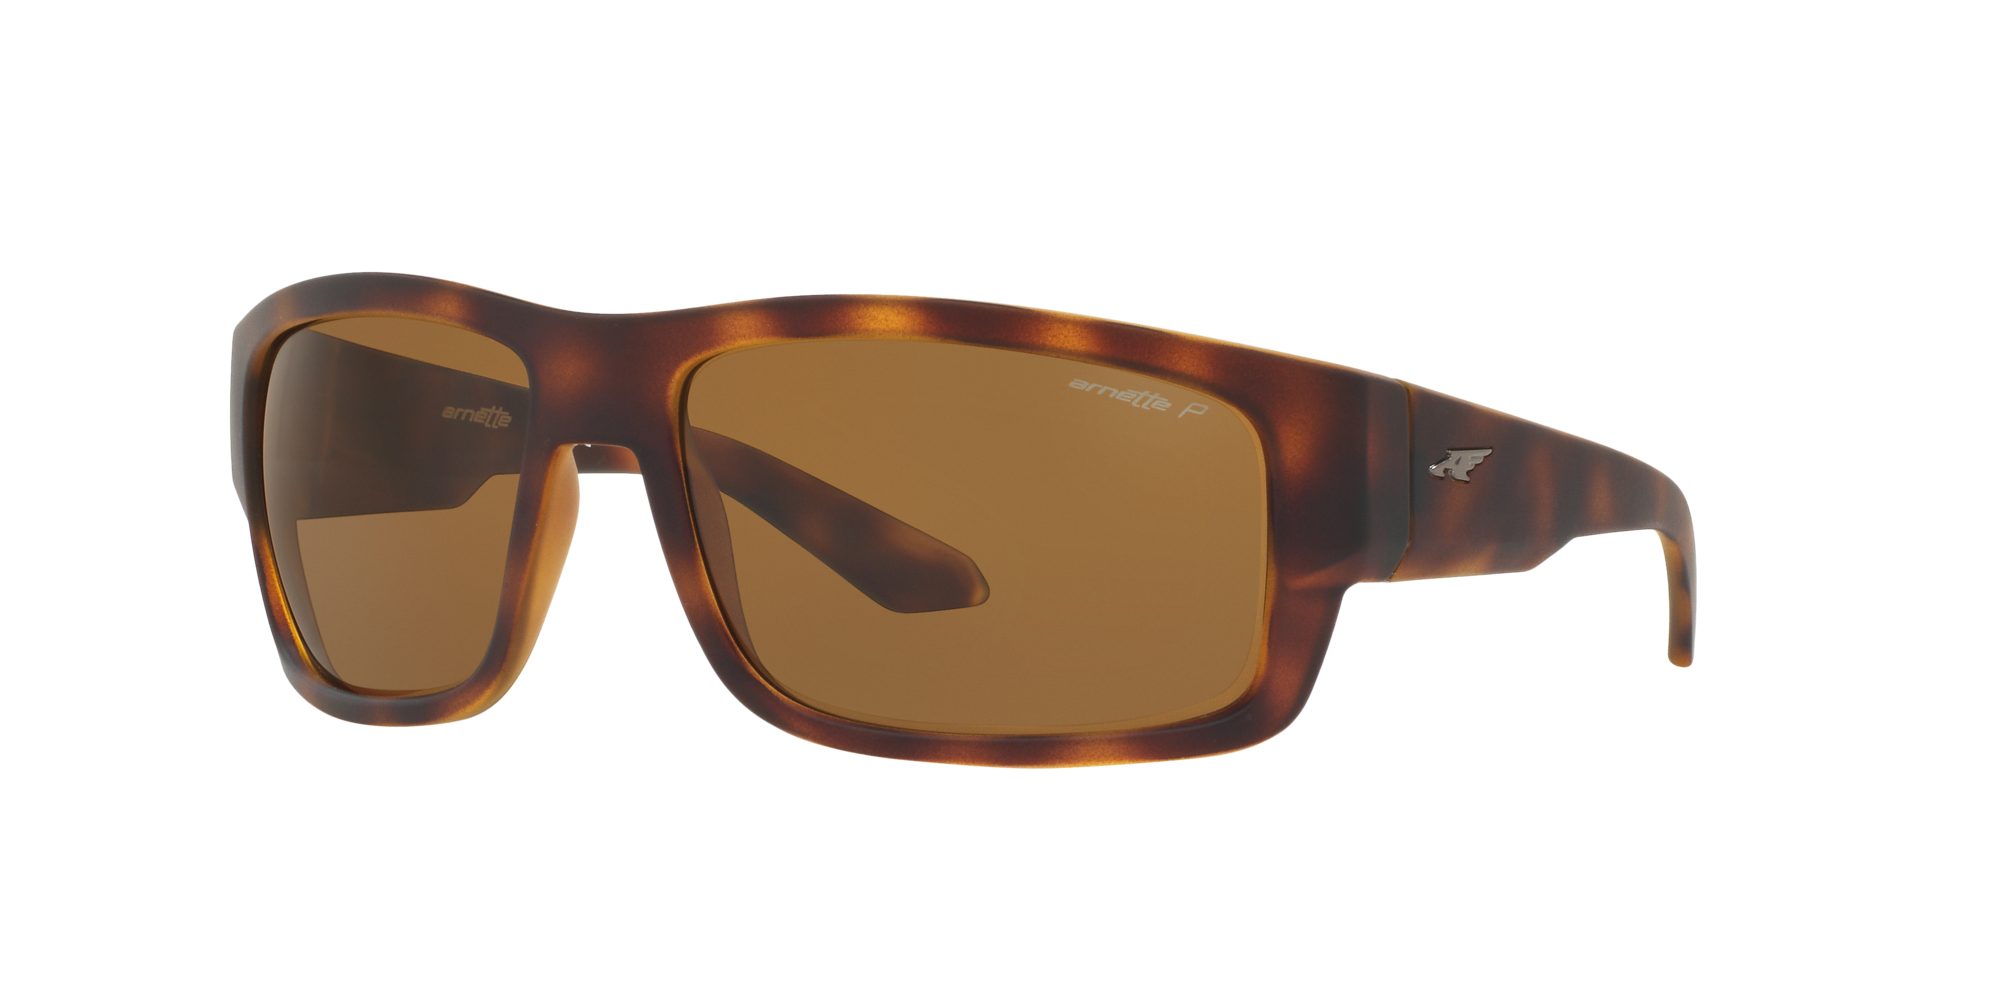 bcc9db919e Sun AN4221 - Fuzzy Havana - Polarized Brown - Nylon